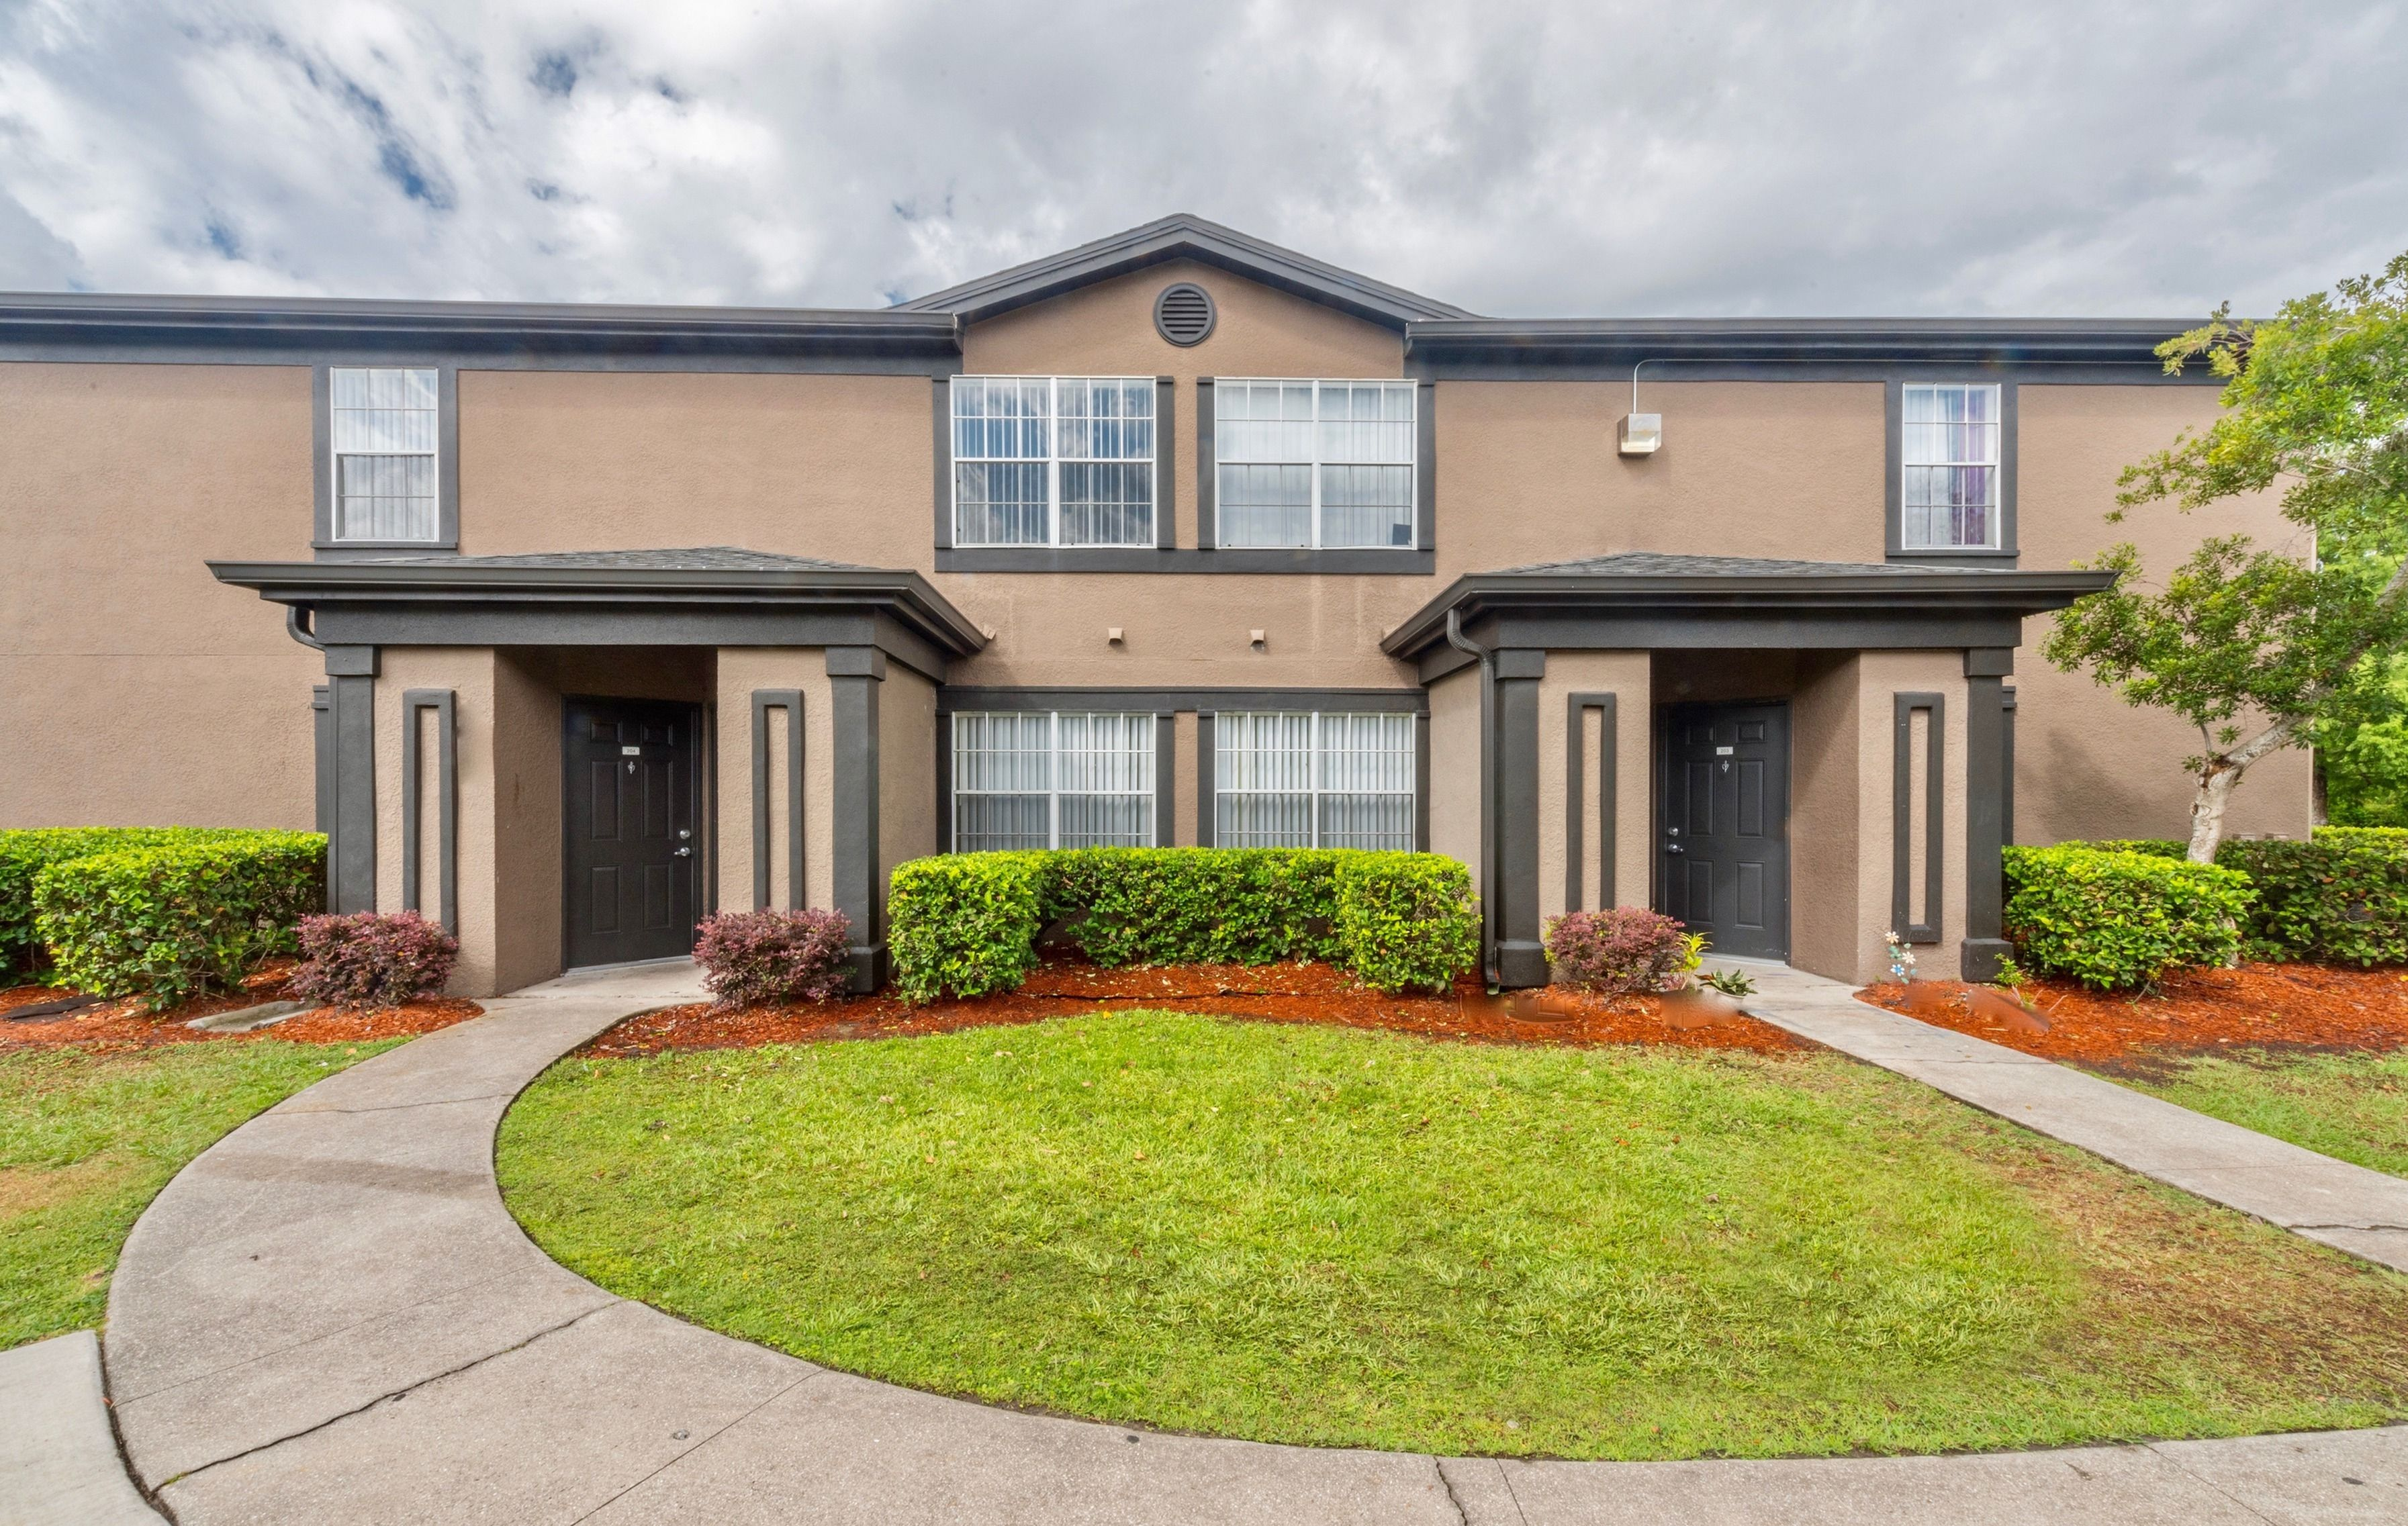 Kissimmee Fl Affordable And Low Income Housing